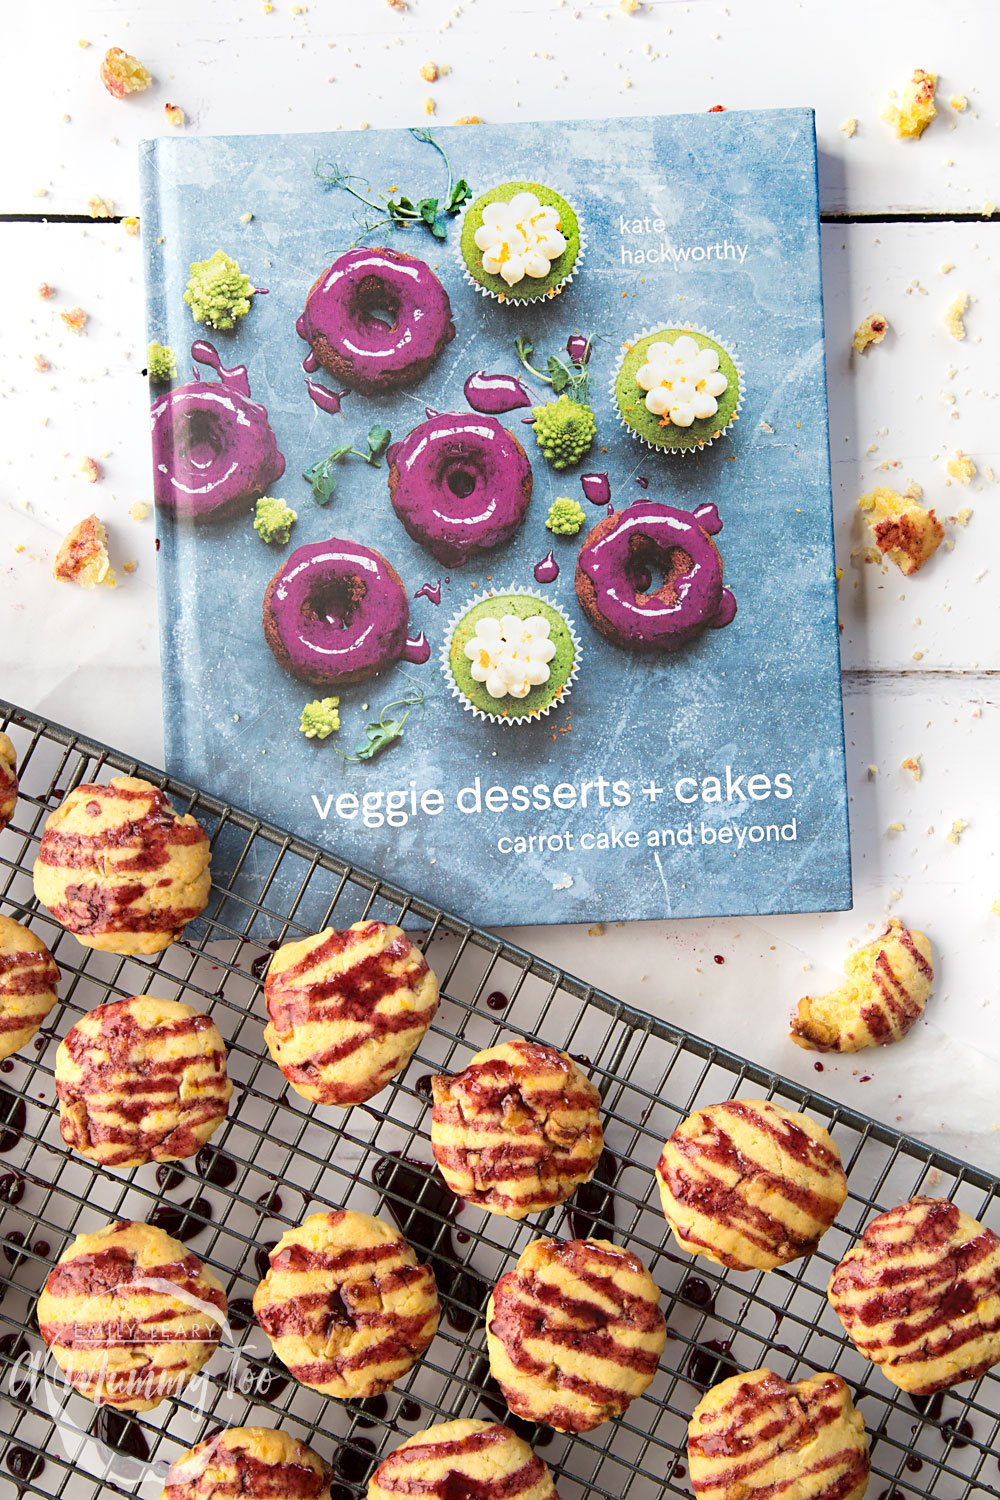 This sweetcorn and white chocolate cookies with blackberry glaze recipe features in Kate Hackworthy's veggie desserts + cakes book